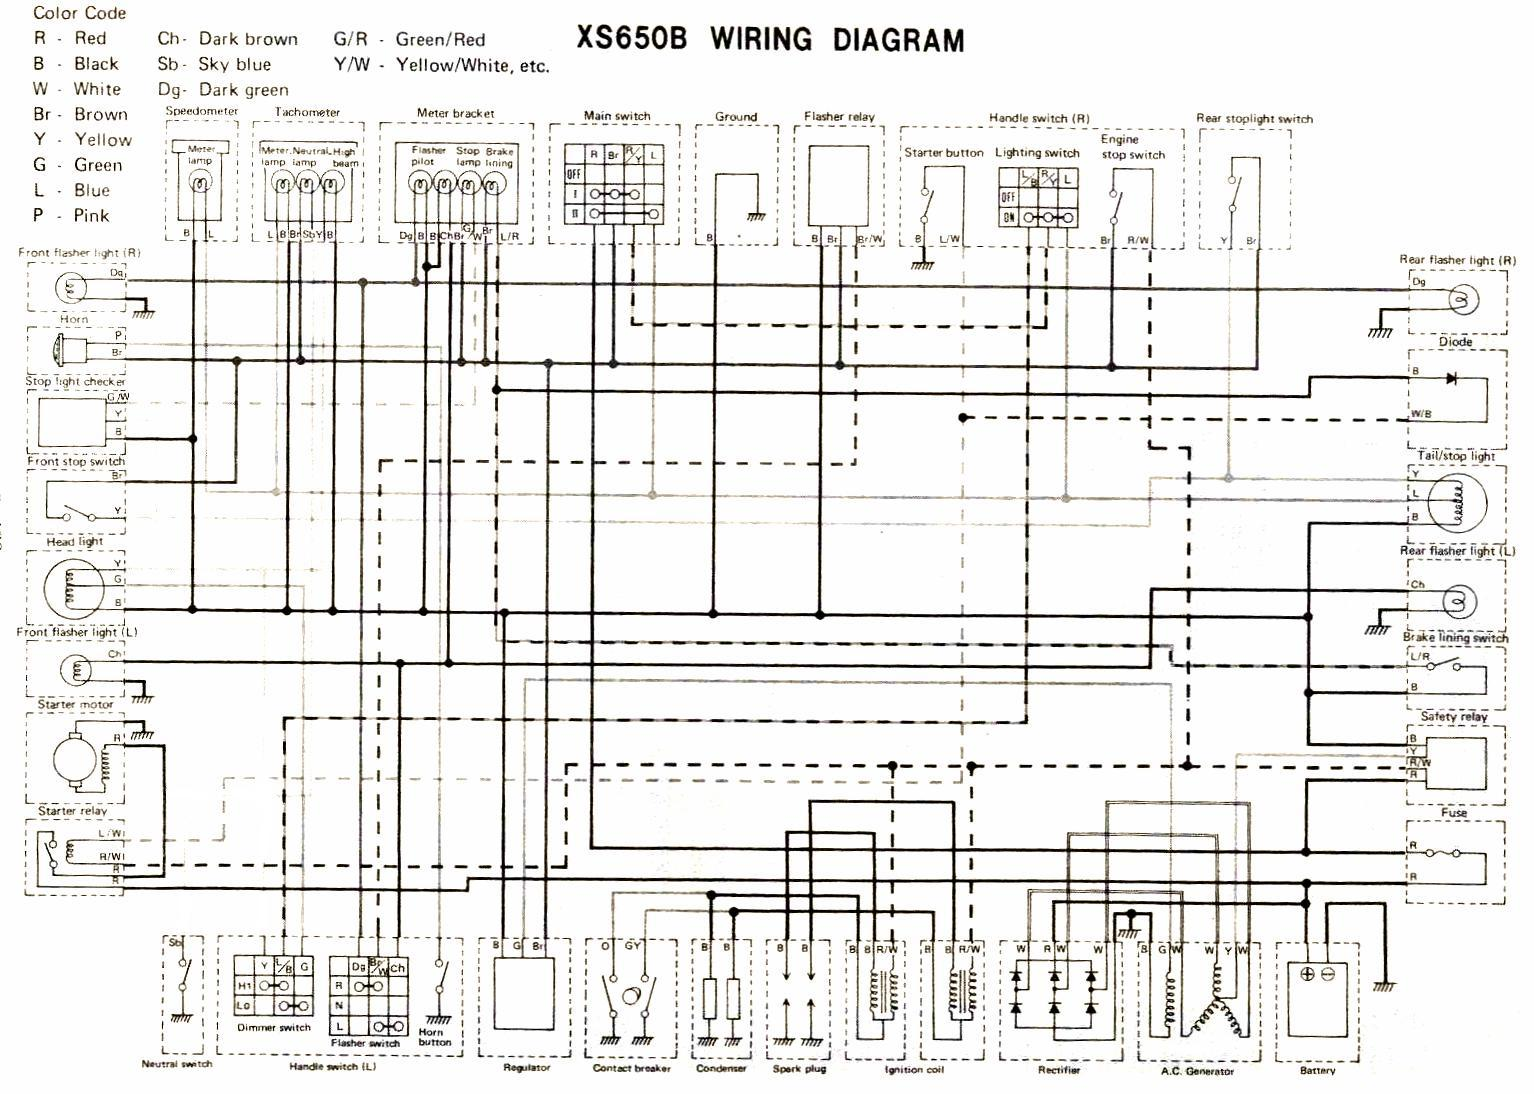 81 Scrambler Wiring Diagram Library Diagrams Rh Oregonmotorcycleparts Com 1977 Xs750 Xs650